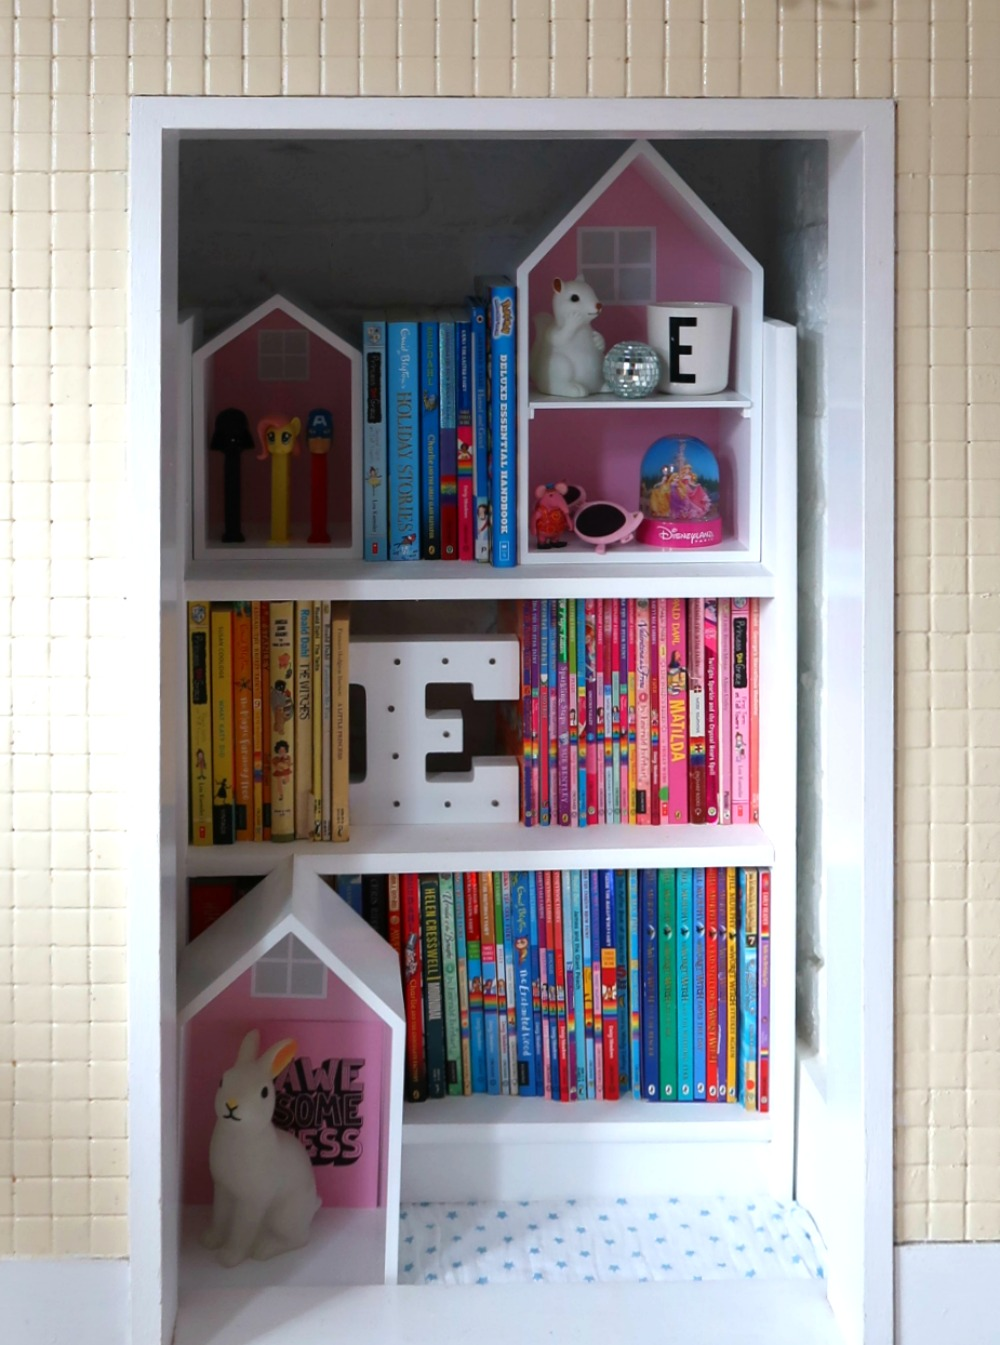 Children's room fireplace makeover - turning a disused fireplace into a rainbow coloured bookshelf for children's rooms #interiors #kidsrooms